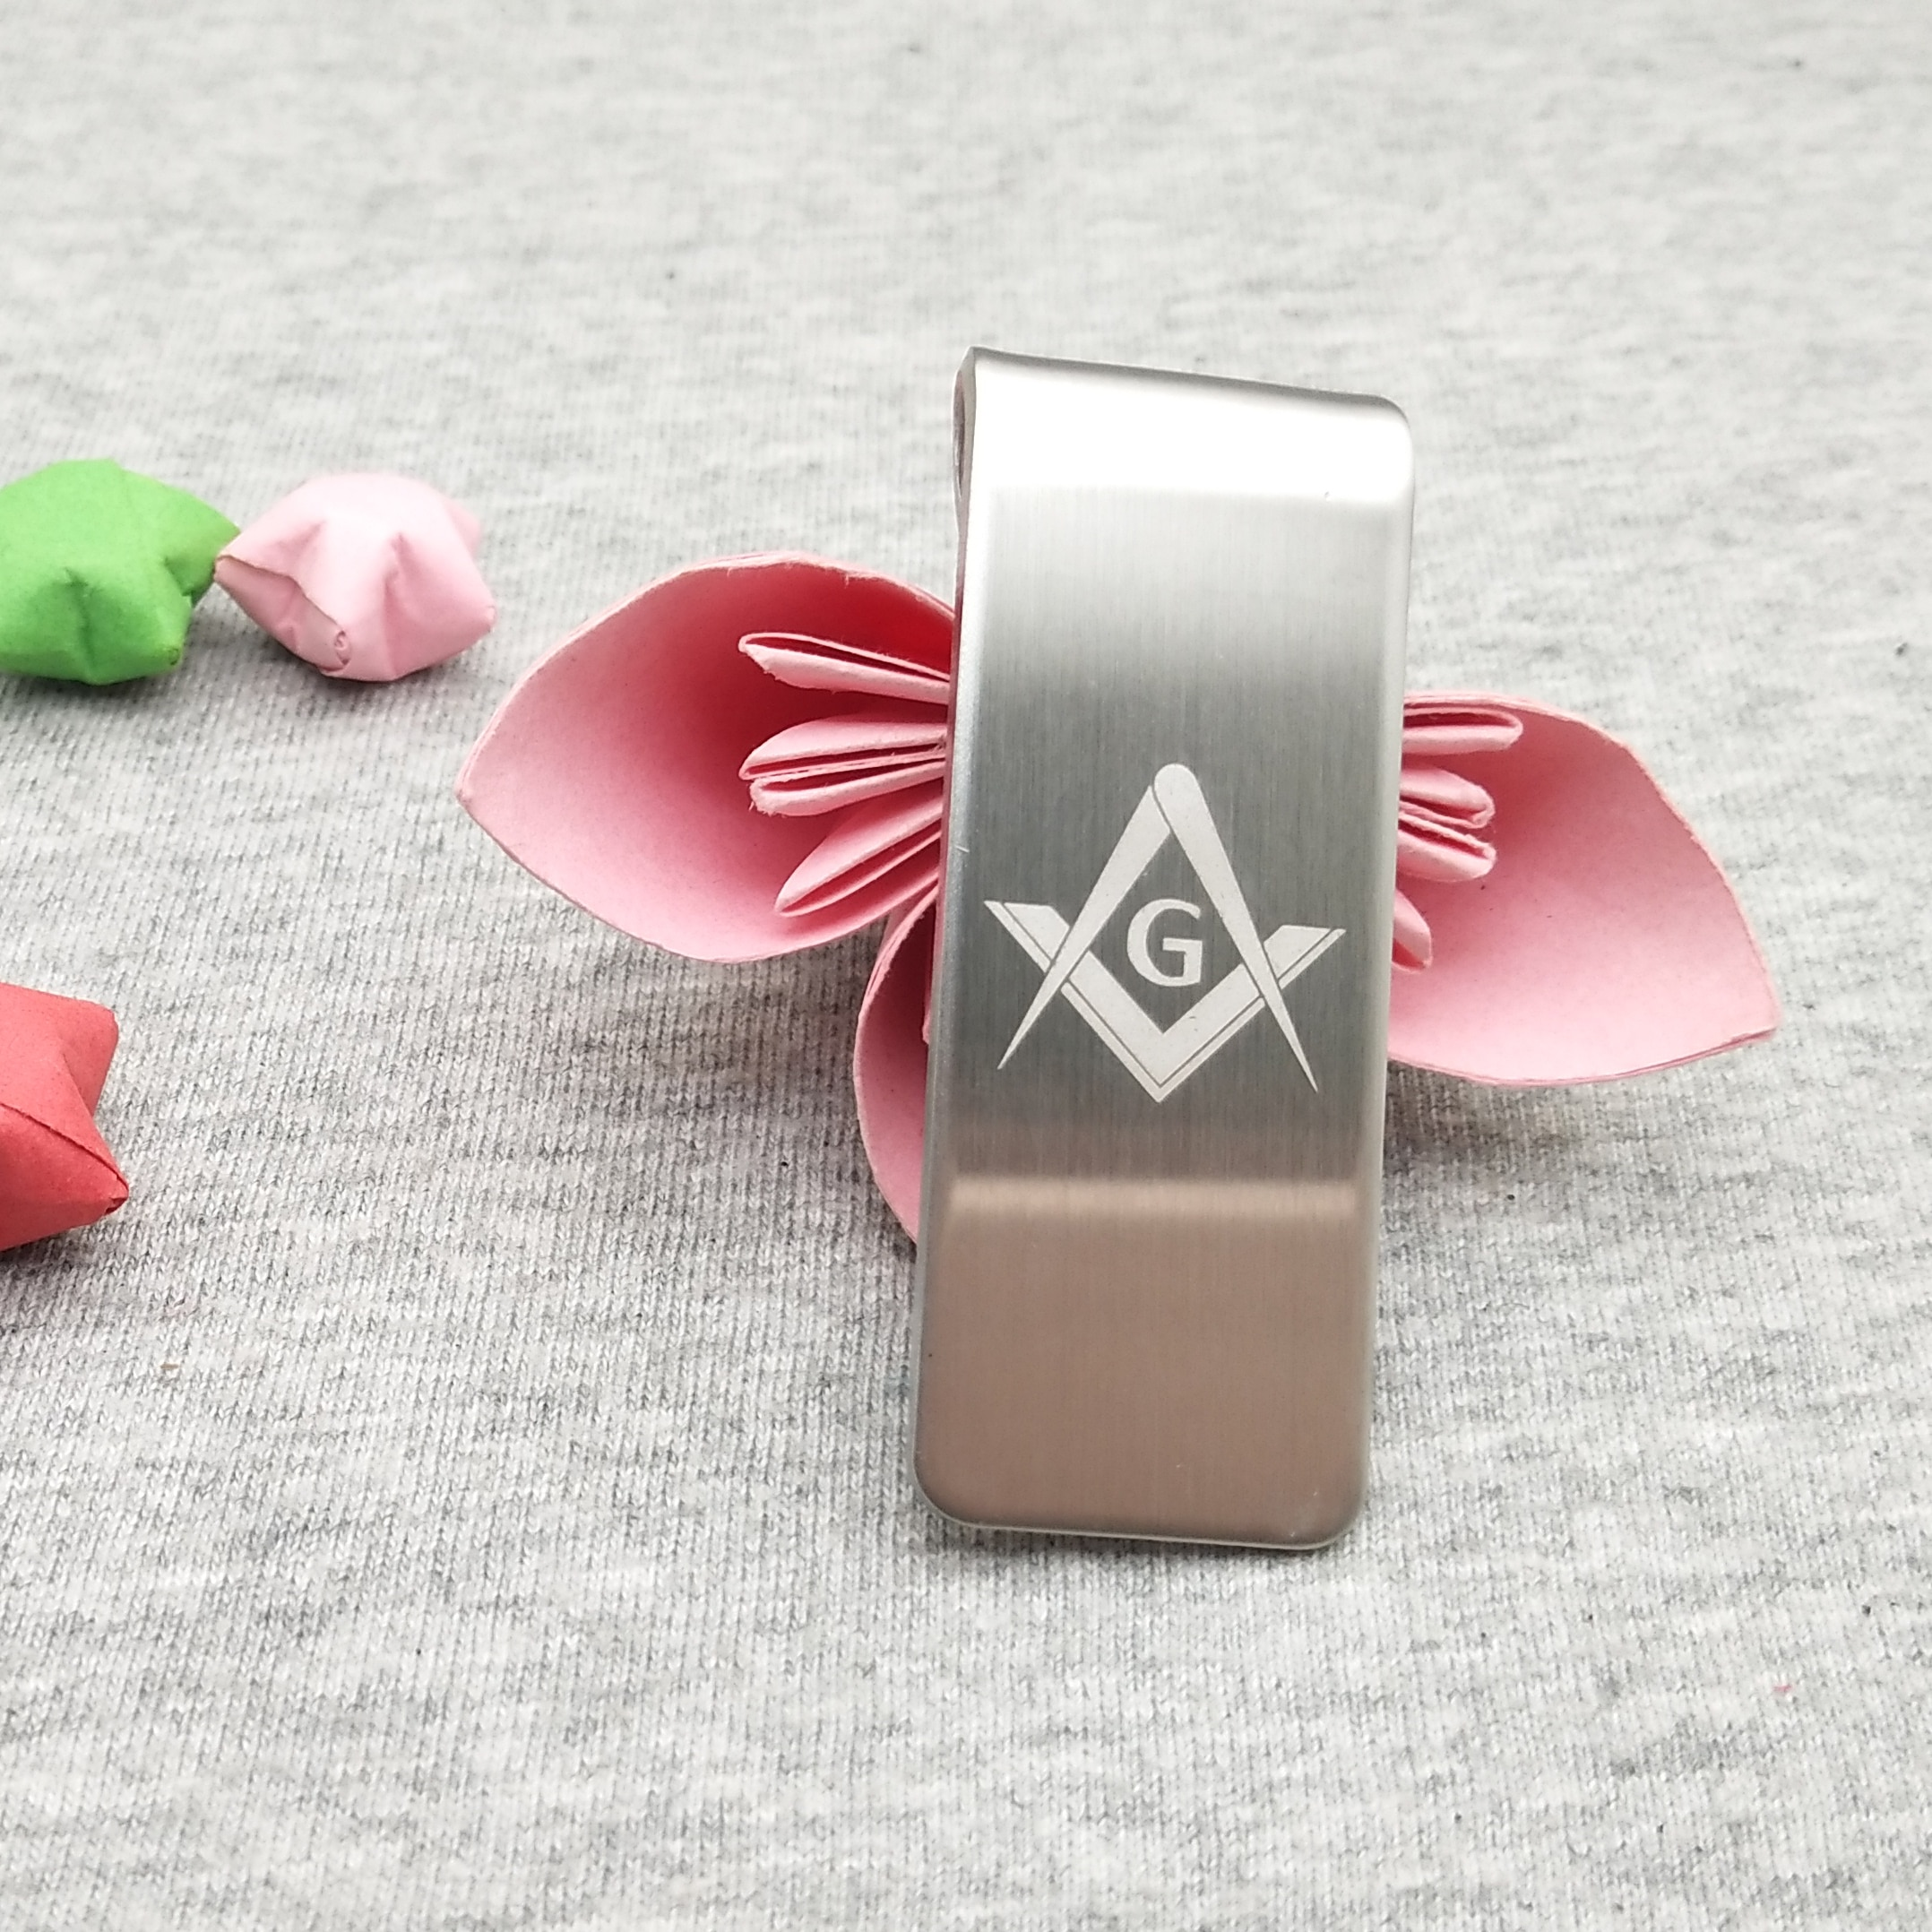 Fashion stainless steel currency dollars clip free customized with your Company logo 100pcs a lot best gifts for business